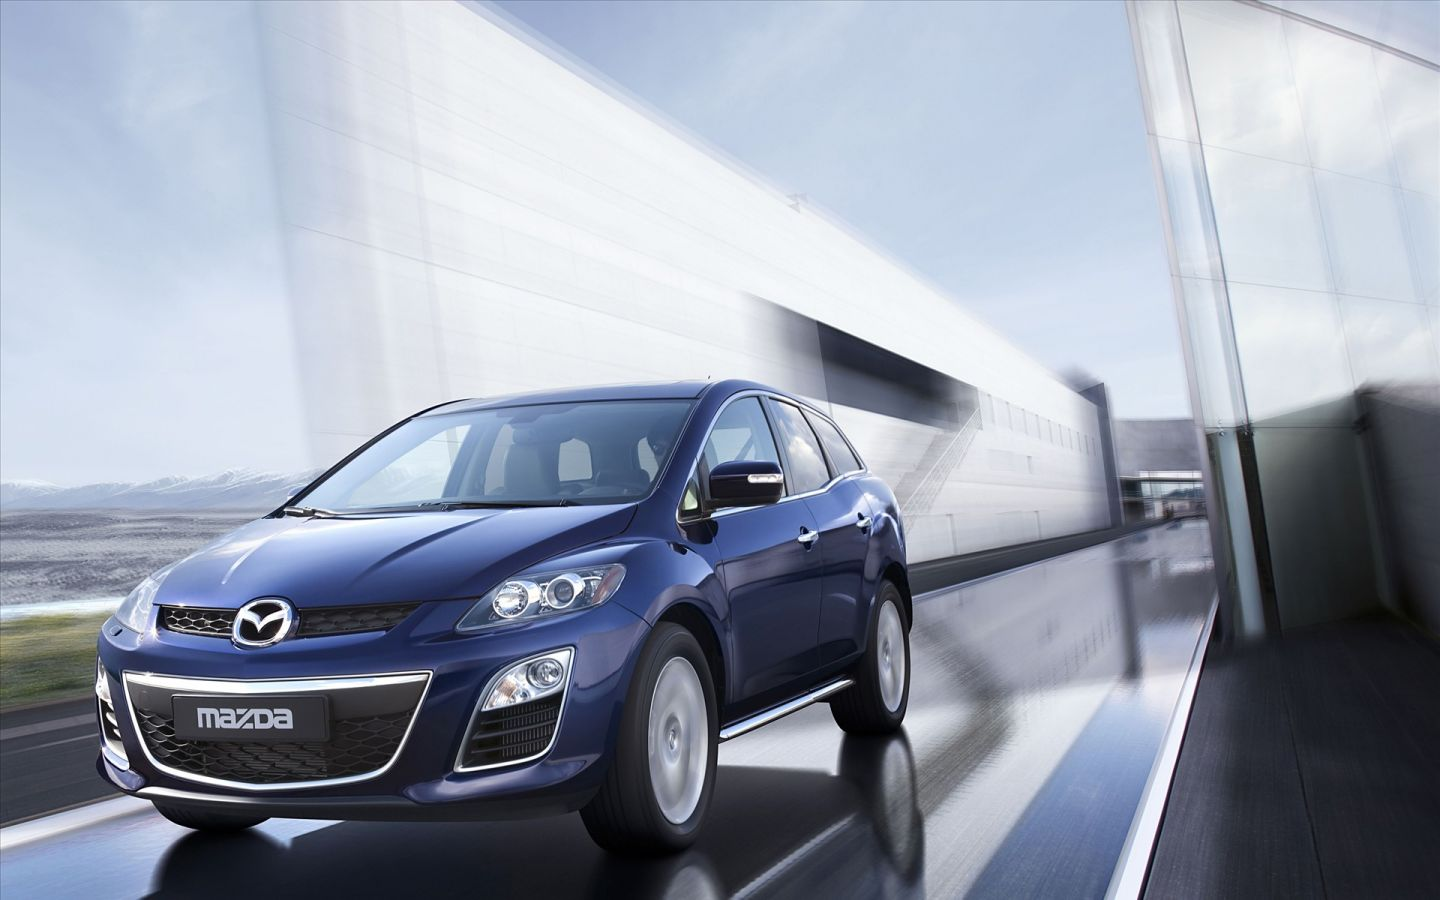 Mazda Cx7 Front View Moving Wallpaper 1440x900